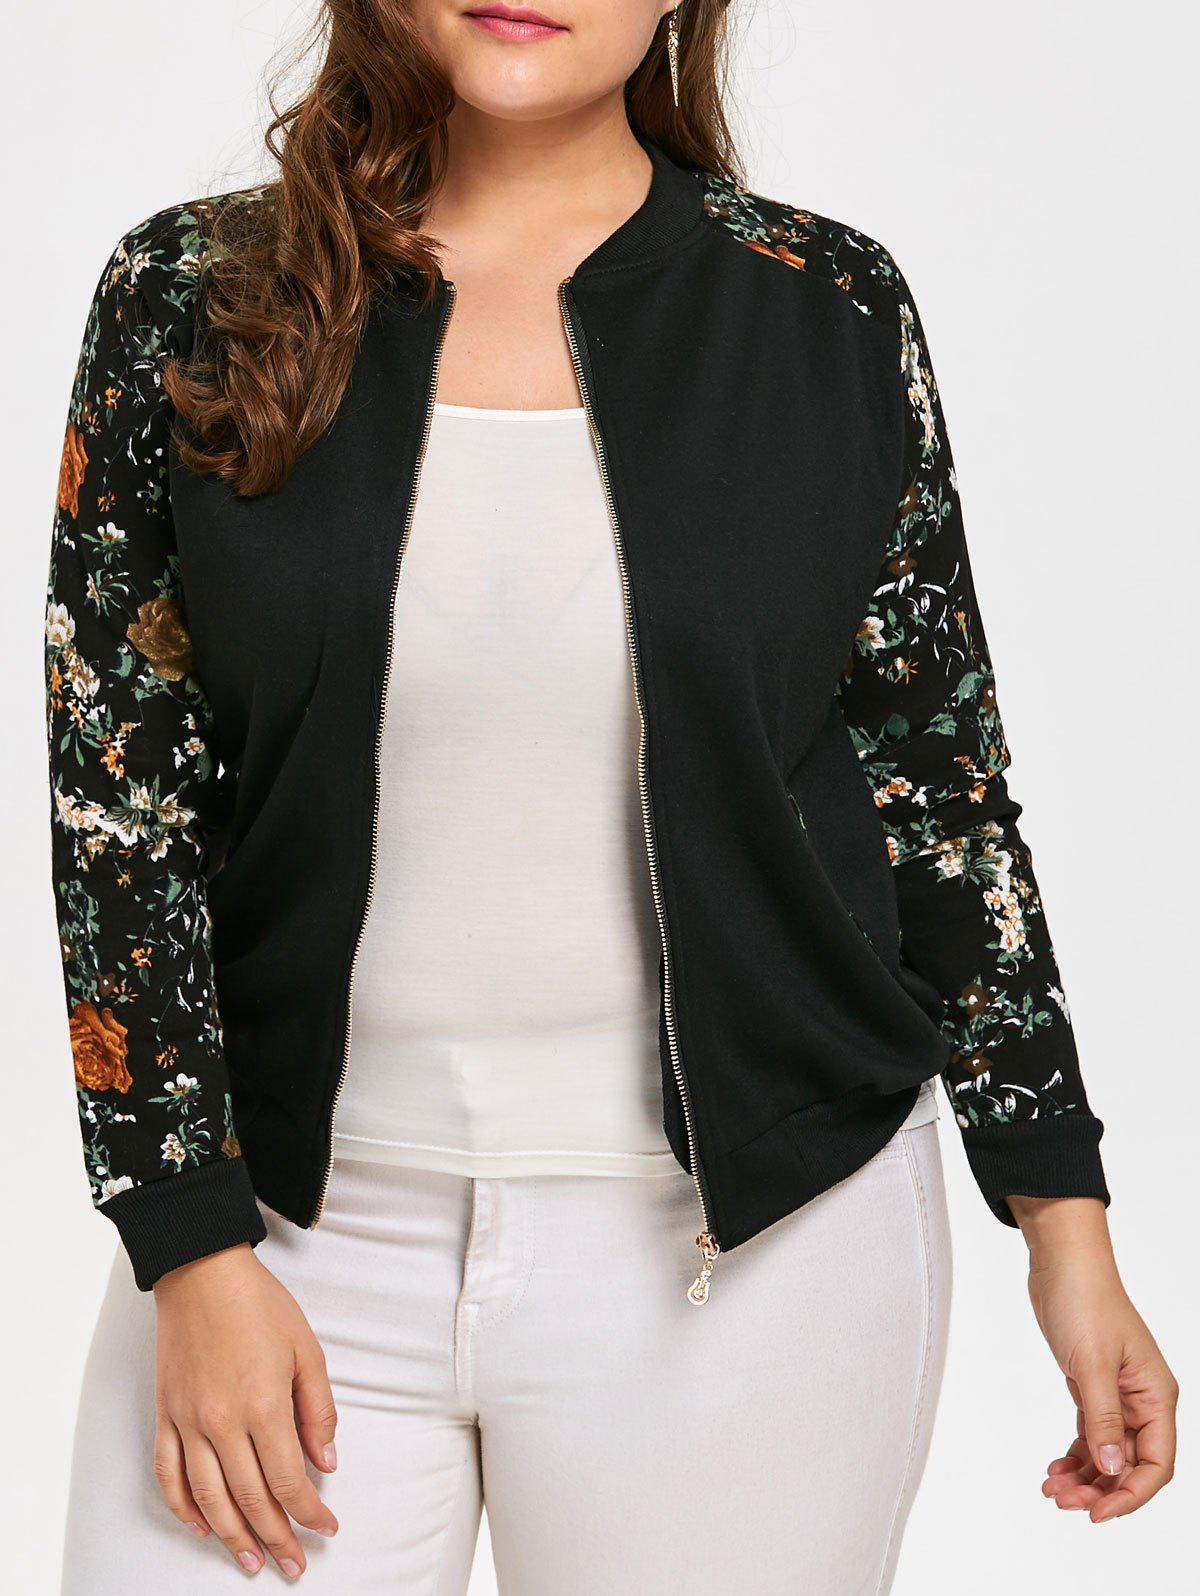 Plus Size Floral Printed Raglan Sleeve  JacketWOMEN<br><br>Size: 5XL; Color: BLACK; Clothes Type: Jackets; Material: Polyester; Type: Slim; Shirt Length: Regular; Sleeve Length: Full; Collar: Round Neck; Closure Type: Zipper; Pattern Type: Floral; Style: Fashion; Season: Fall,Spring,Winter; Weight: 0.4500kg; Package Contents: 1 x Jacket;